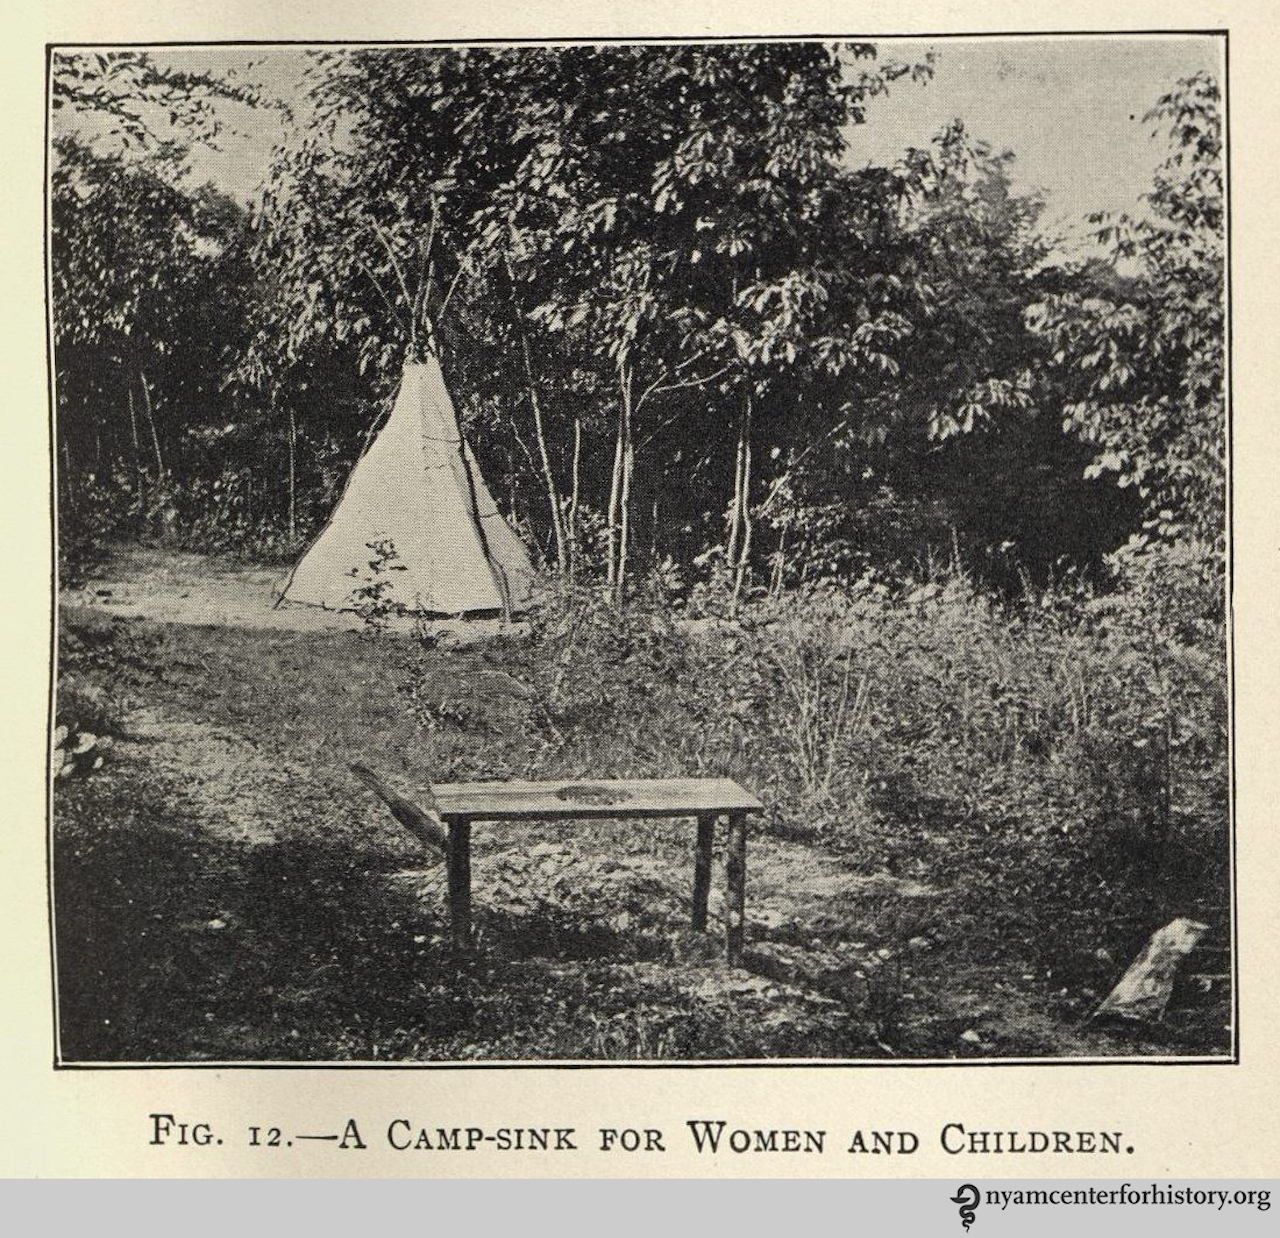 'The Sanitation of Recreation Camps and Parks' by Harvey Brown Bashore (1908)